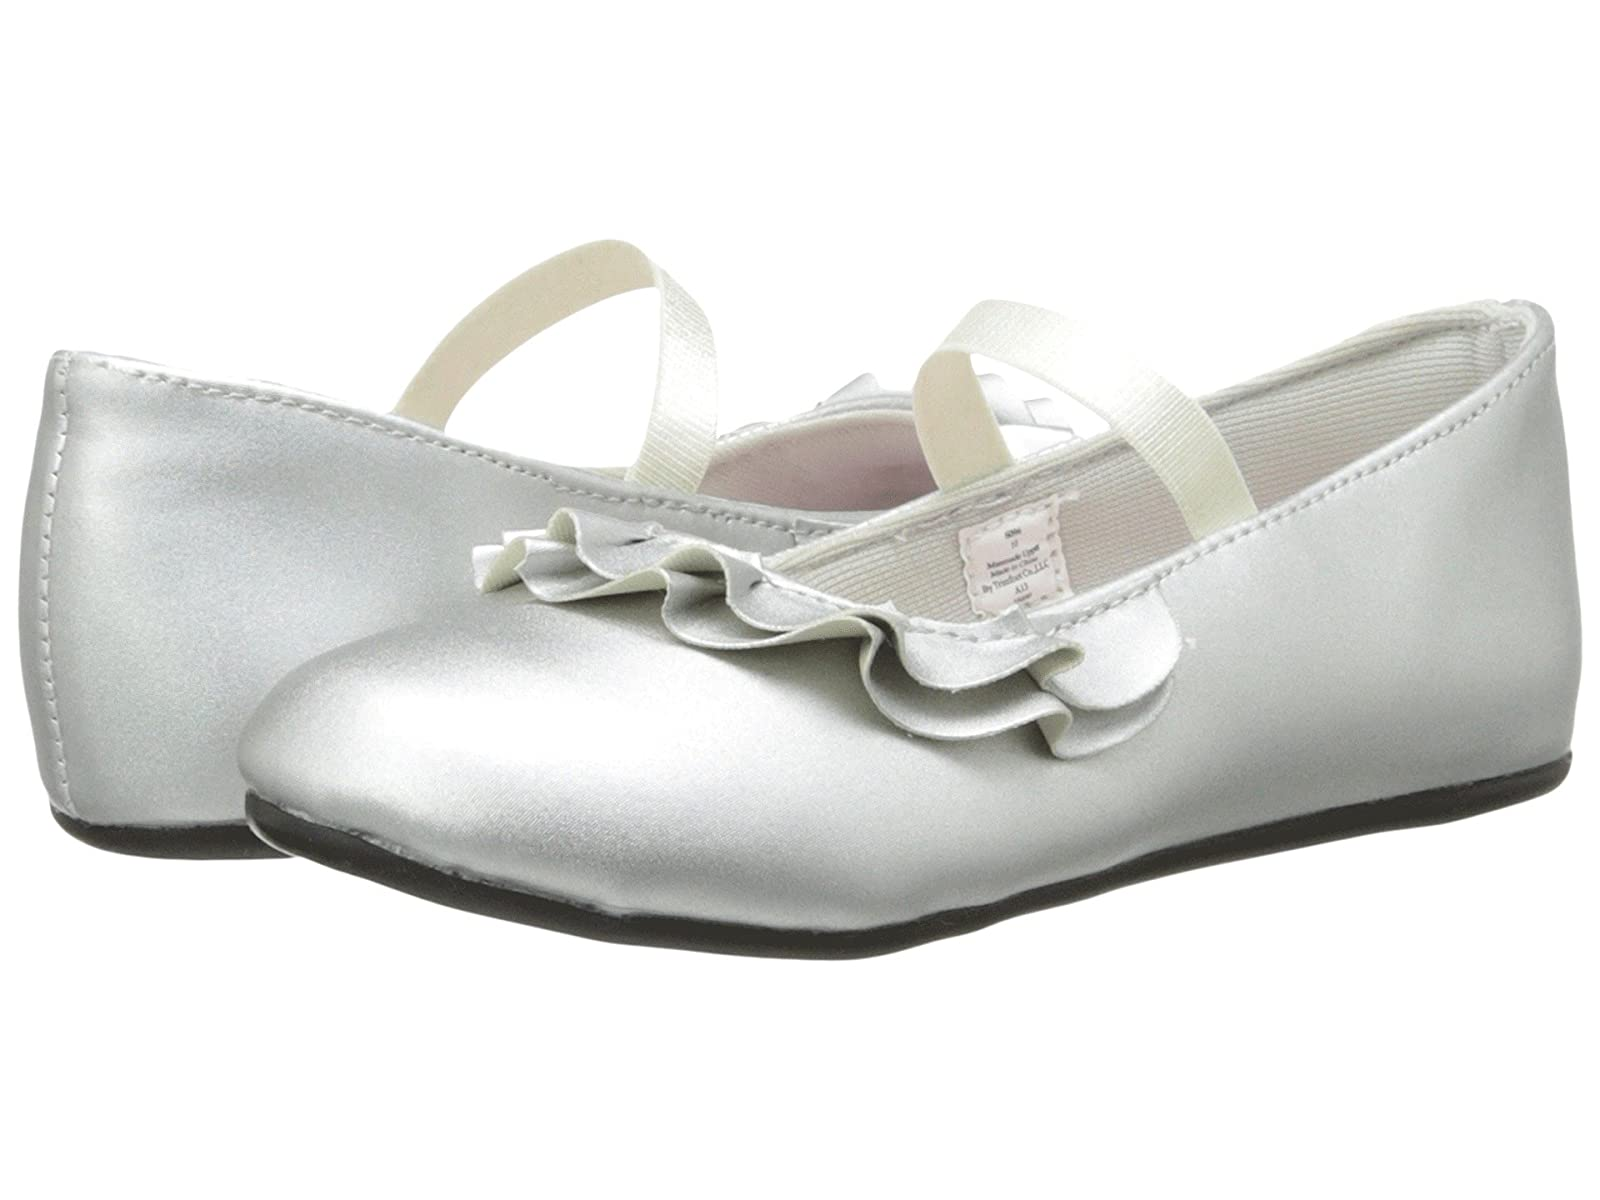 Baby Deer Ruffle Skimmer Mary Jane (Infant/Toddler)Atmospheric grades have affordable shoes